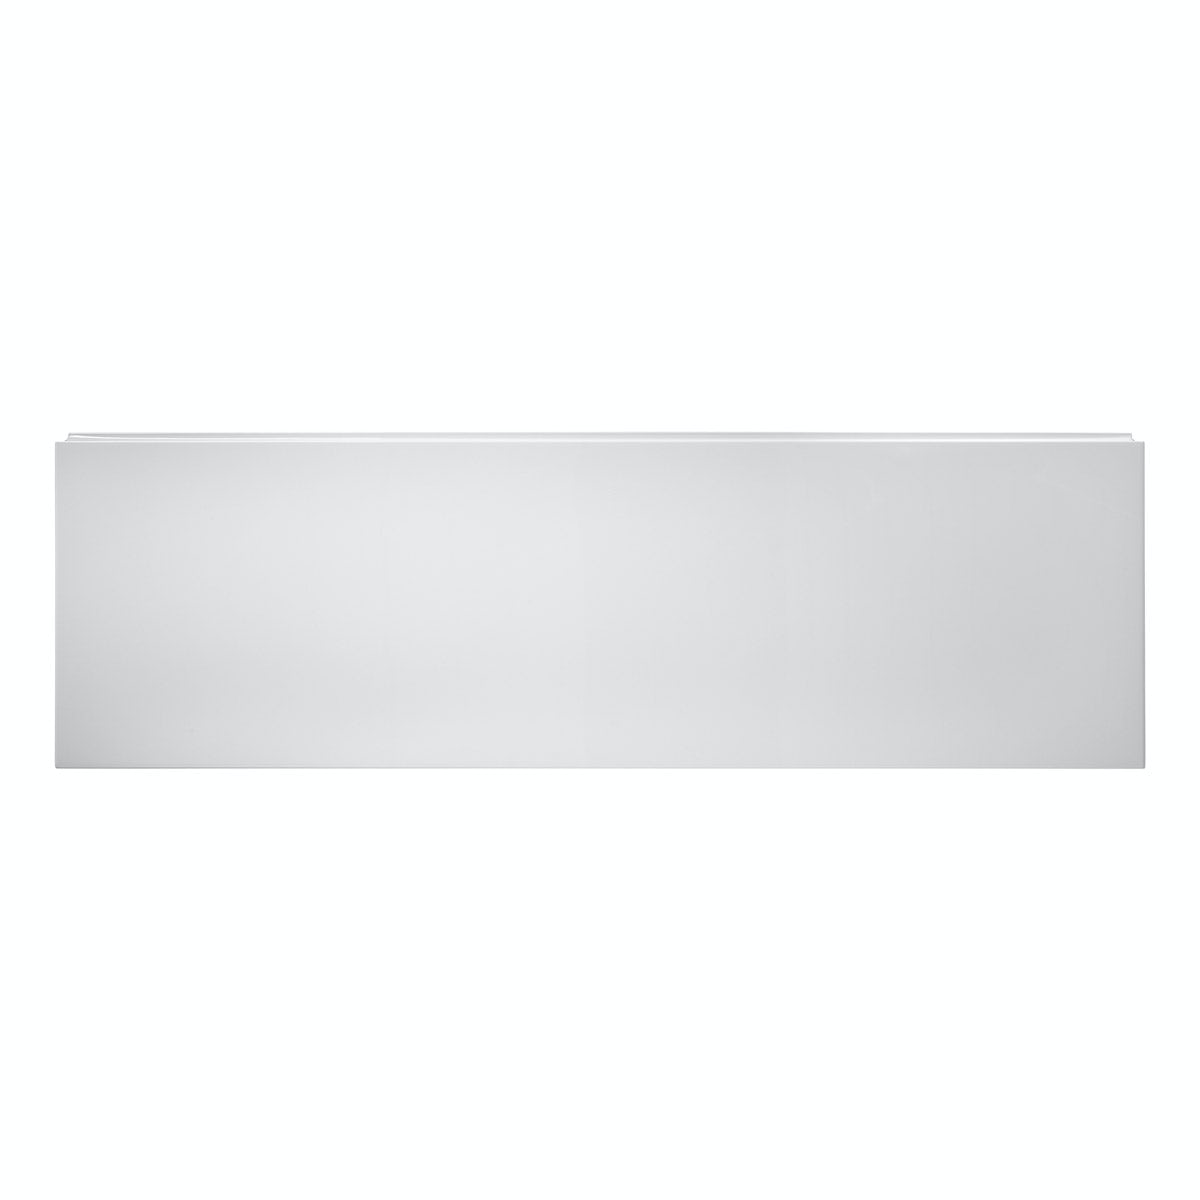 Ideal Standard acrylic front panel 1700mm